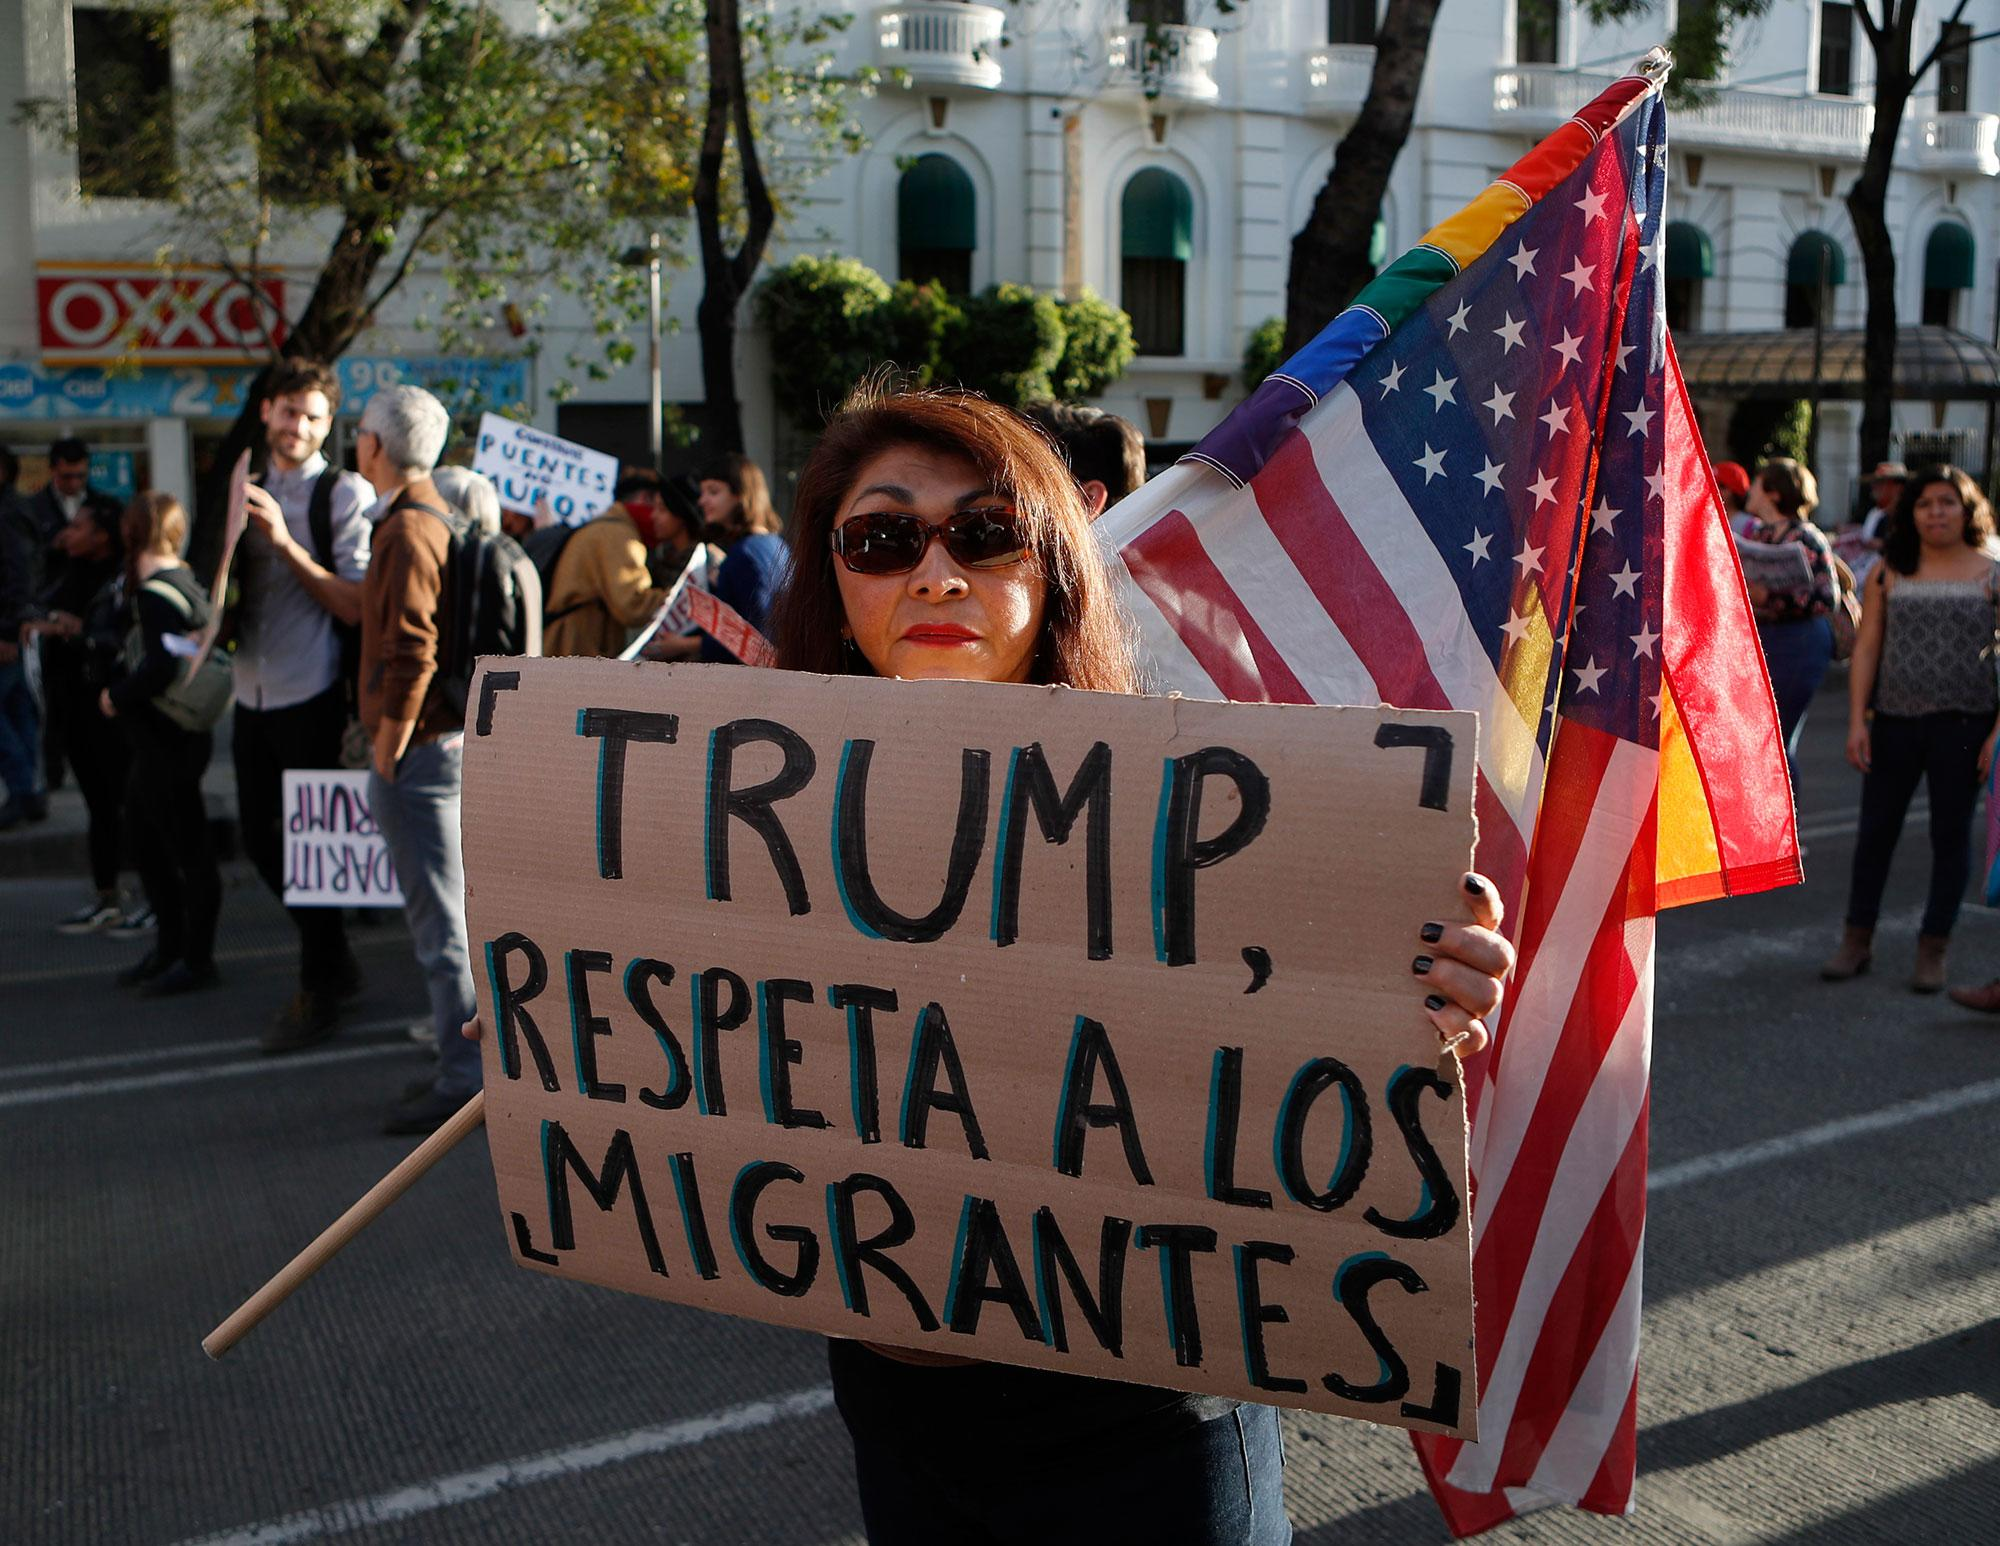 """<p>A woman holds a sign that reads in Spanish """"Trump, respect migrants"""" during a march called by a local women's movement against U.S. President Donald Trump in Mexico City, Friday, Jan. 20, 2017. Donald Trump became the 45th president of the United States Friday, Jan. 20 2017, amid apprehension in Mexico regarding his previous comments about Mexico and his promise to build a border wall to halt migration. (AP Photo/Eduardo Verdugo) </p>"""